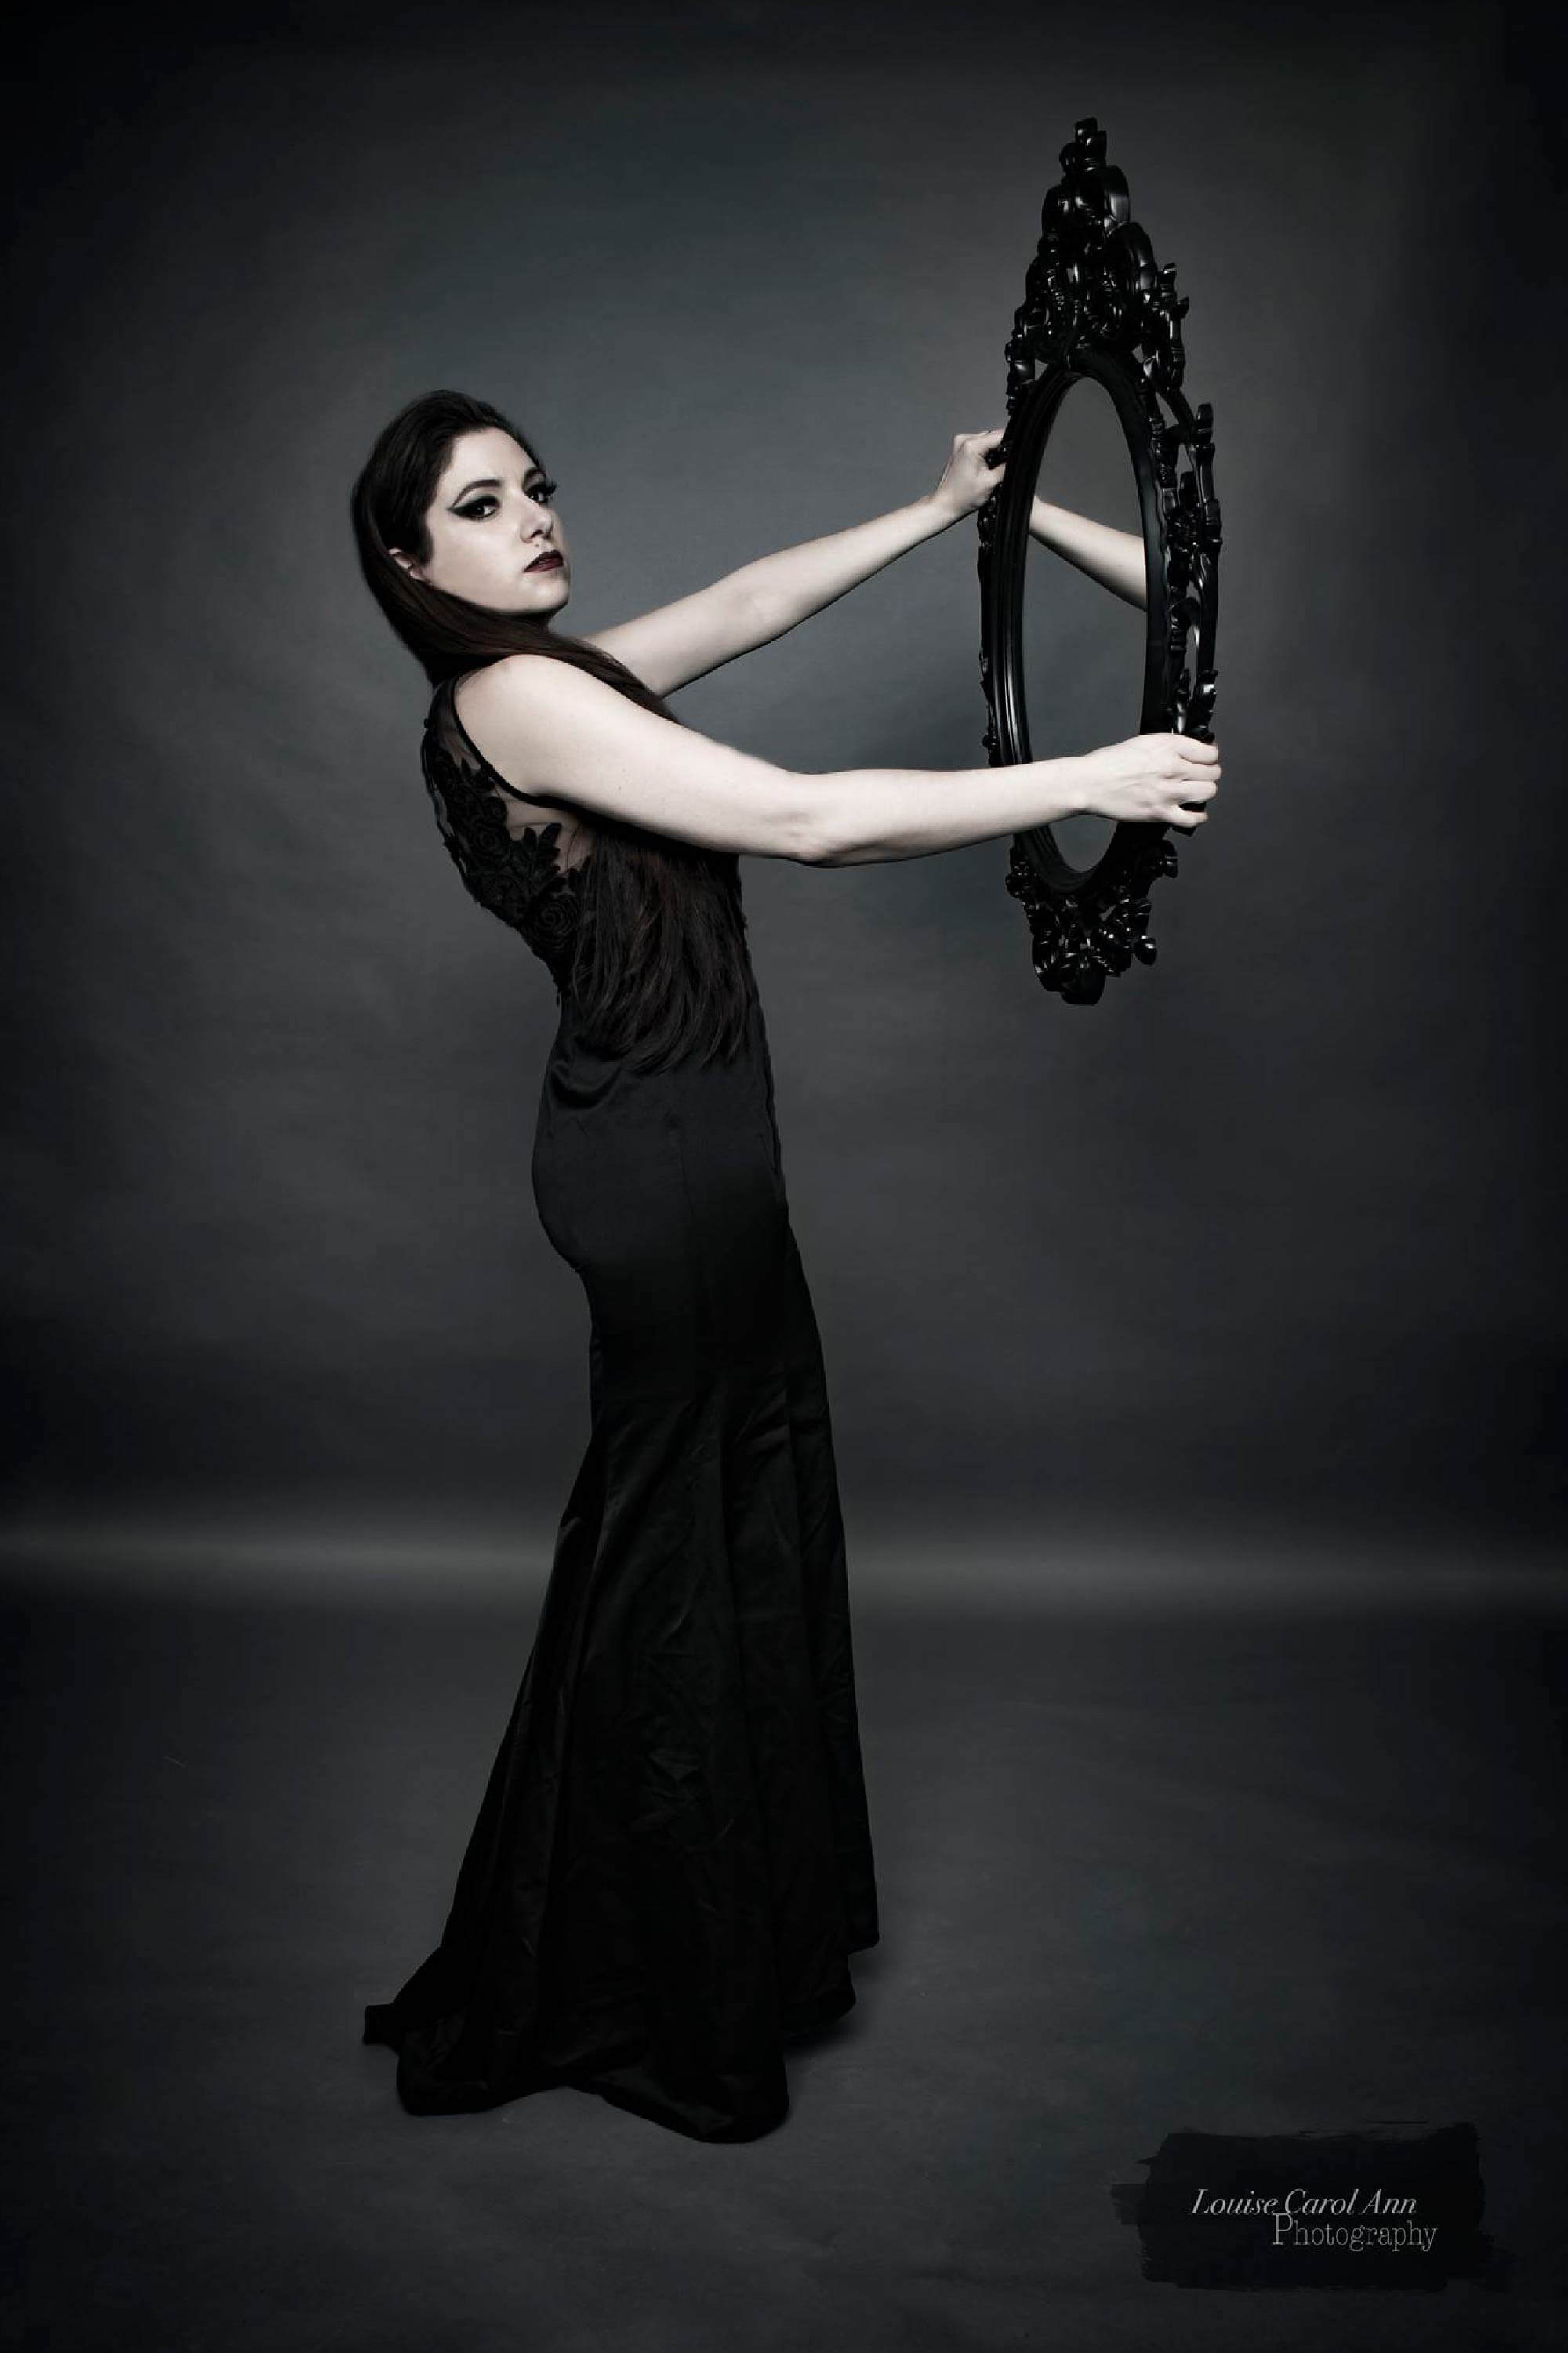 Woman in black dress holds up a mirror to herself.